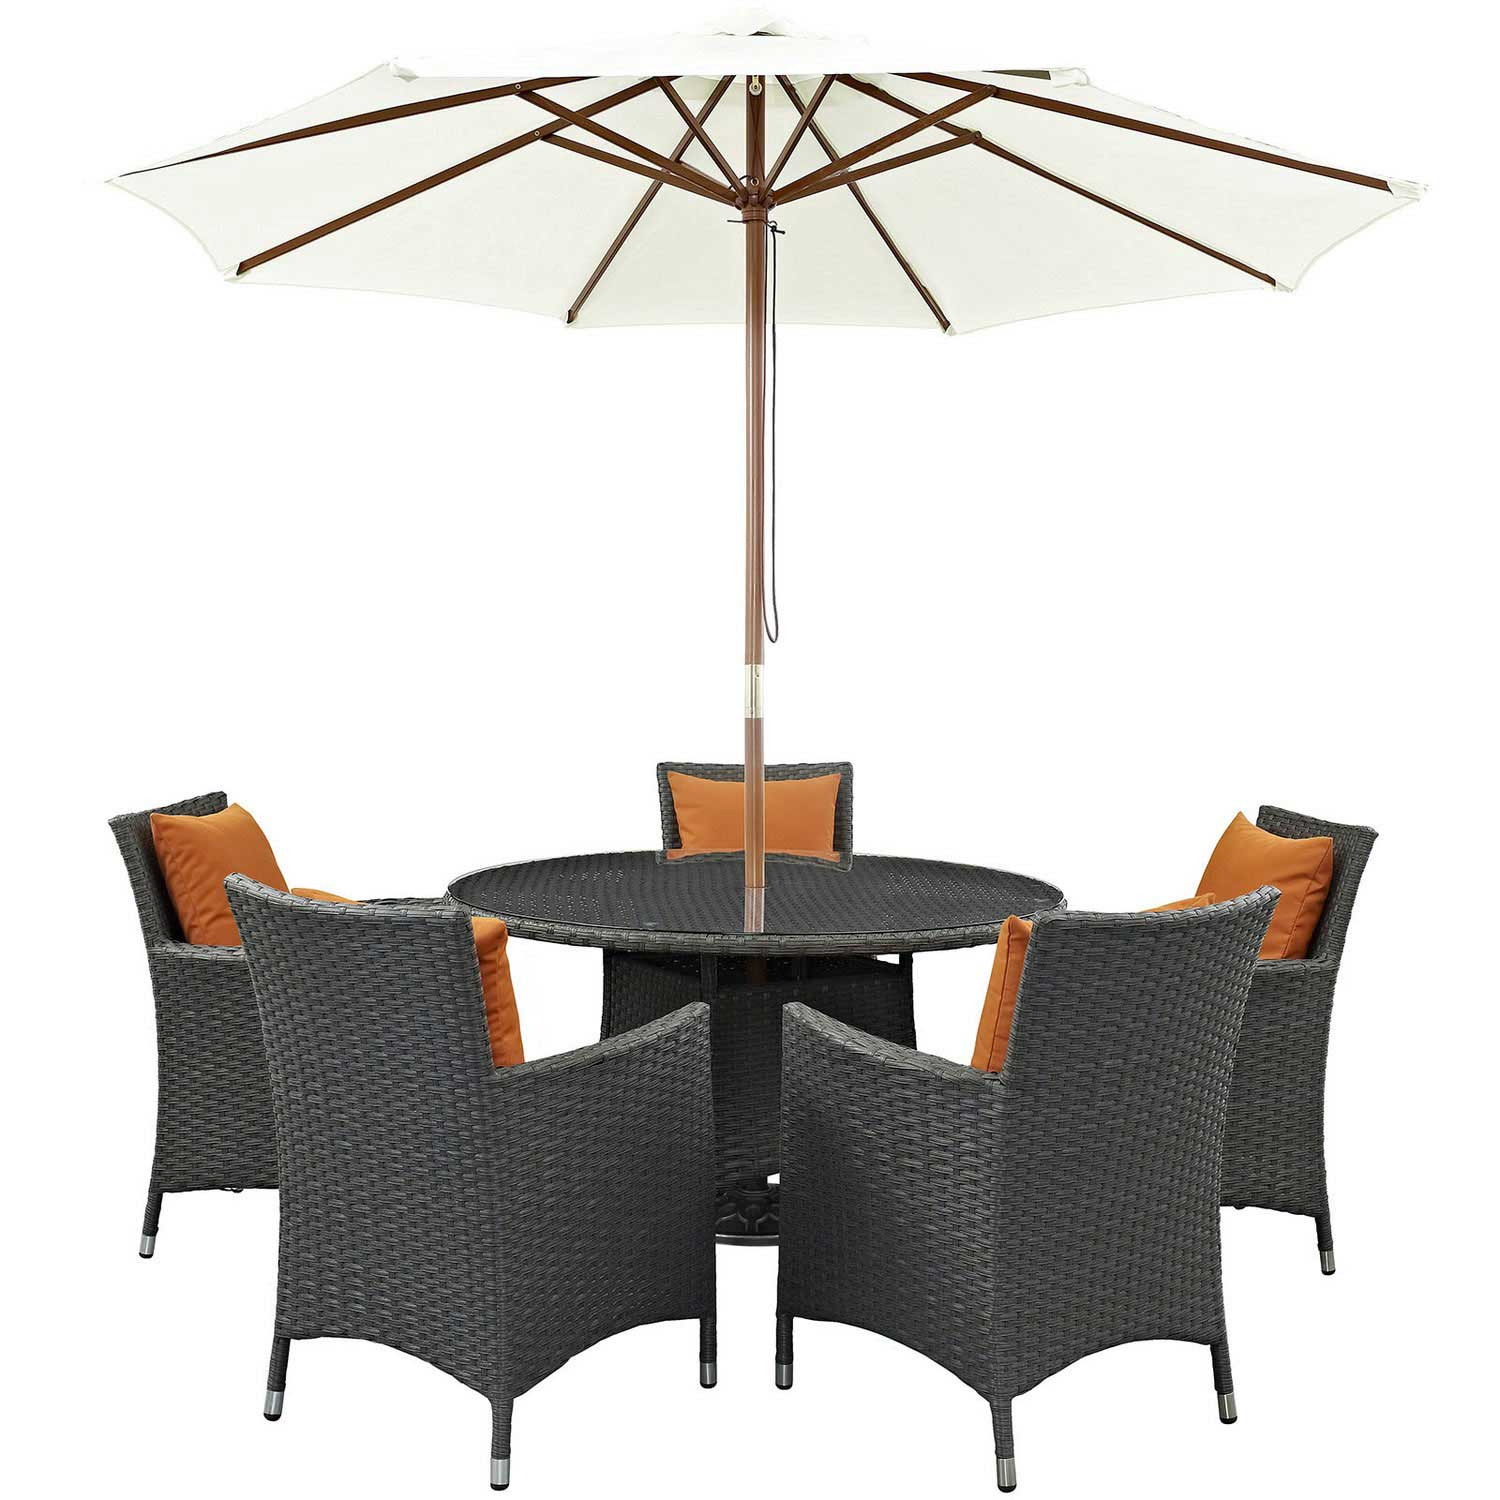 Modway Sojourn 7 Piece Outdoor Patio Sunbrella Dining Set - Canvas Tuscan